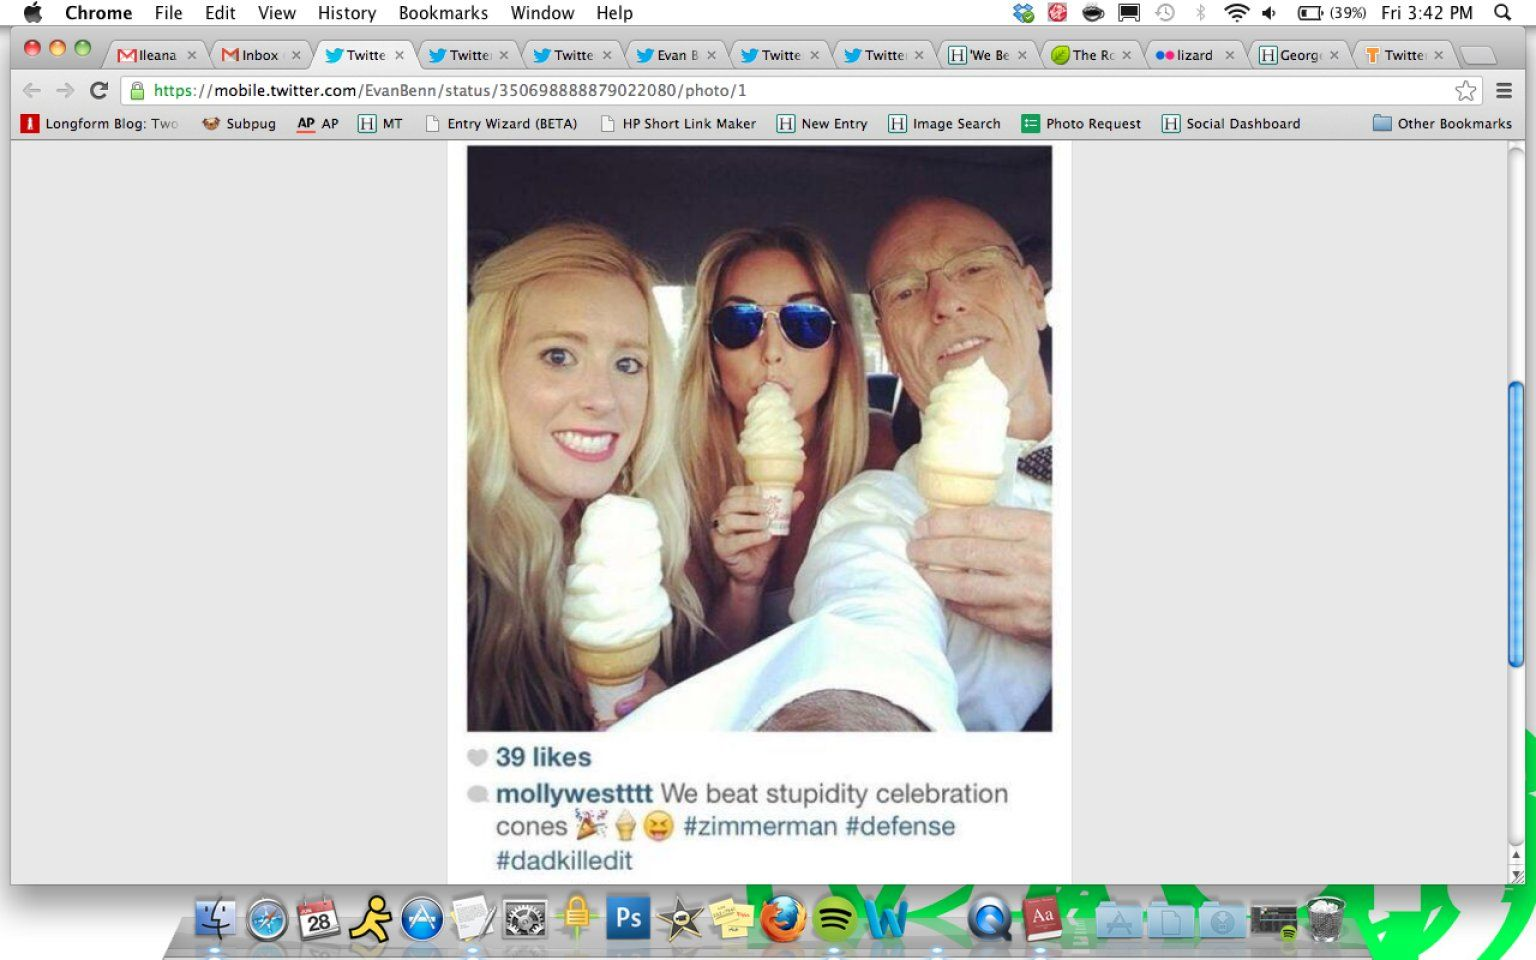 George Zimmerman's Lawyer, Daughter Celebrate With Ice Cream, Share Photo On Instagram